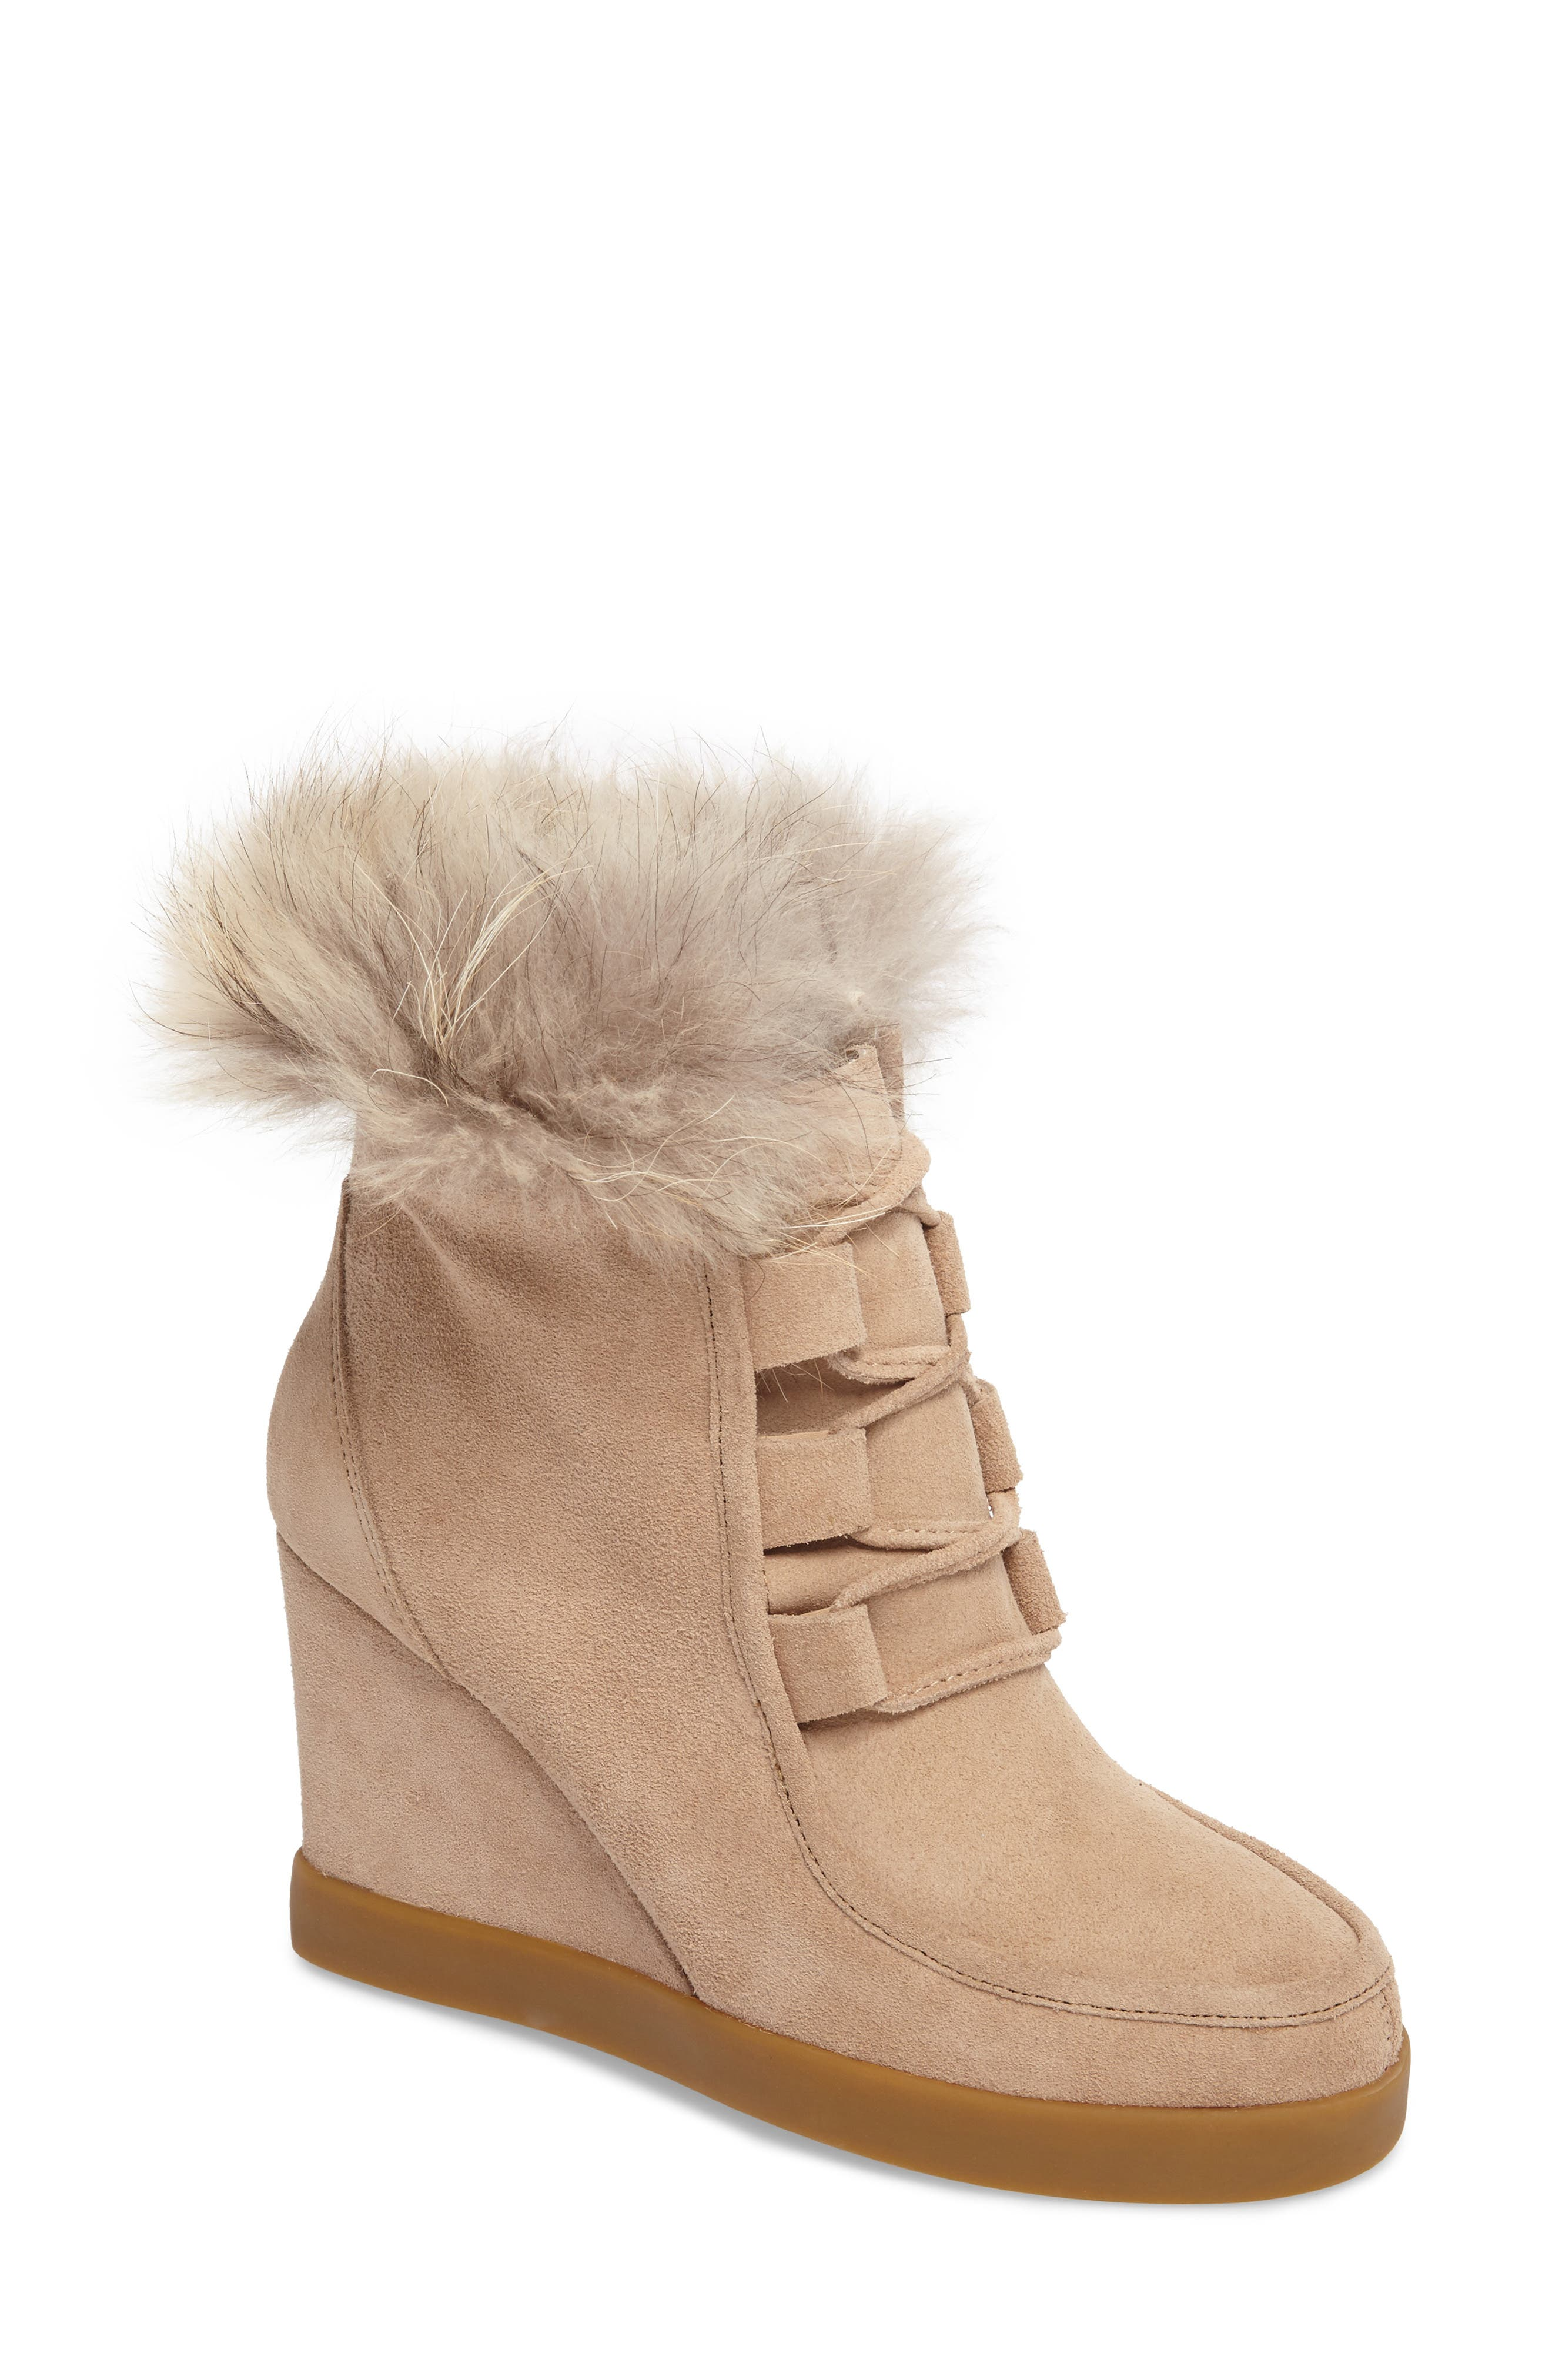 Holly Wedge Bootie with Genuine Fox Fur Trim,                             Main thumbnail 1, color,                             Natural Suede